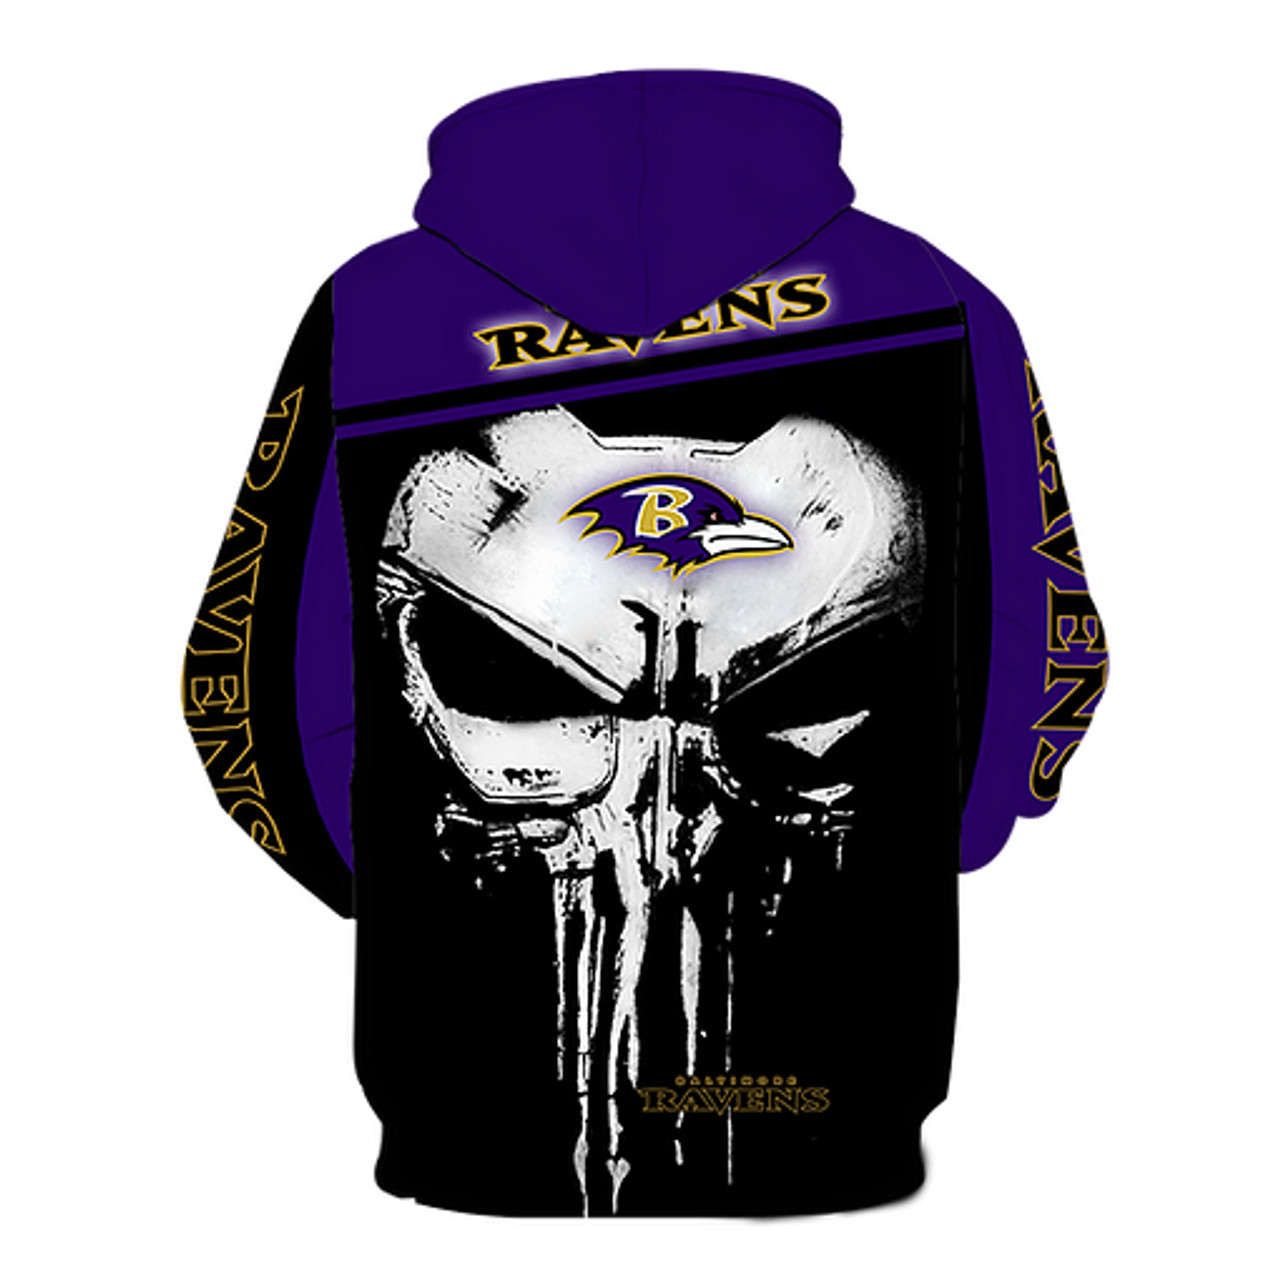 OFFICIAL-N.F.L.BALTIMORE-RAVENS-PULLOVER-HOODIES/CUSTOM-3-D-GRAPHIC-PRINTED-PUNISHER-SKULL!